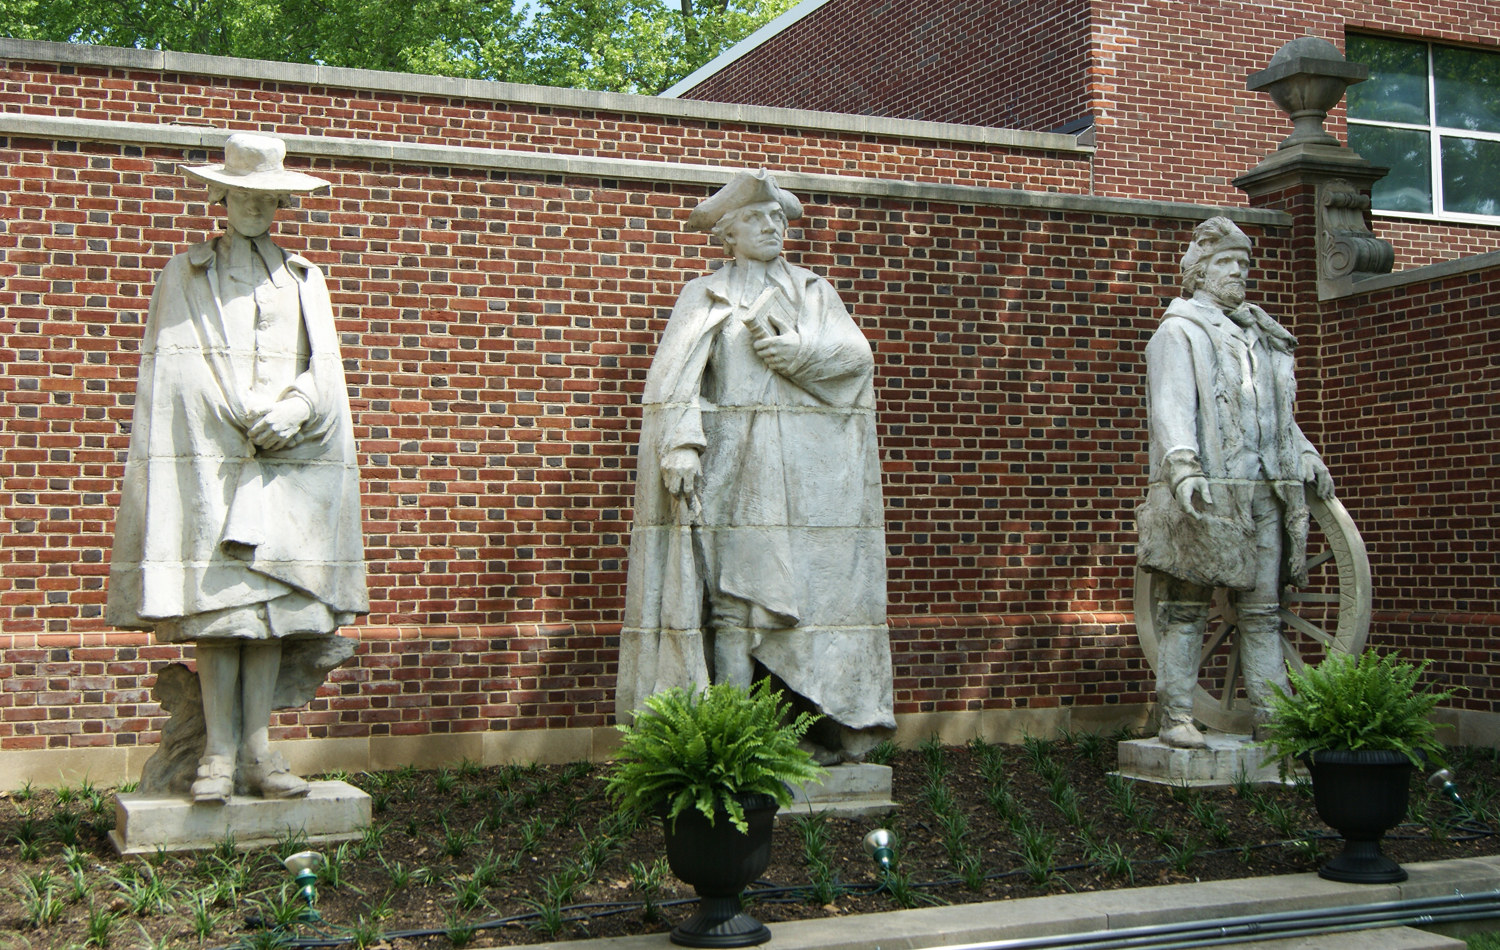 Statues of Davie, Caldwell, and Whitman standing to the right of the Historical Society building